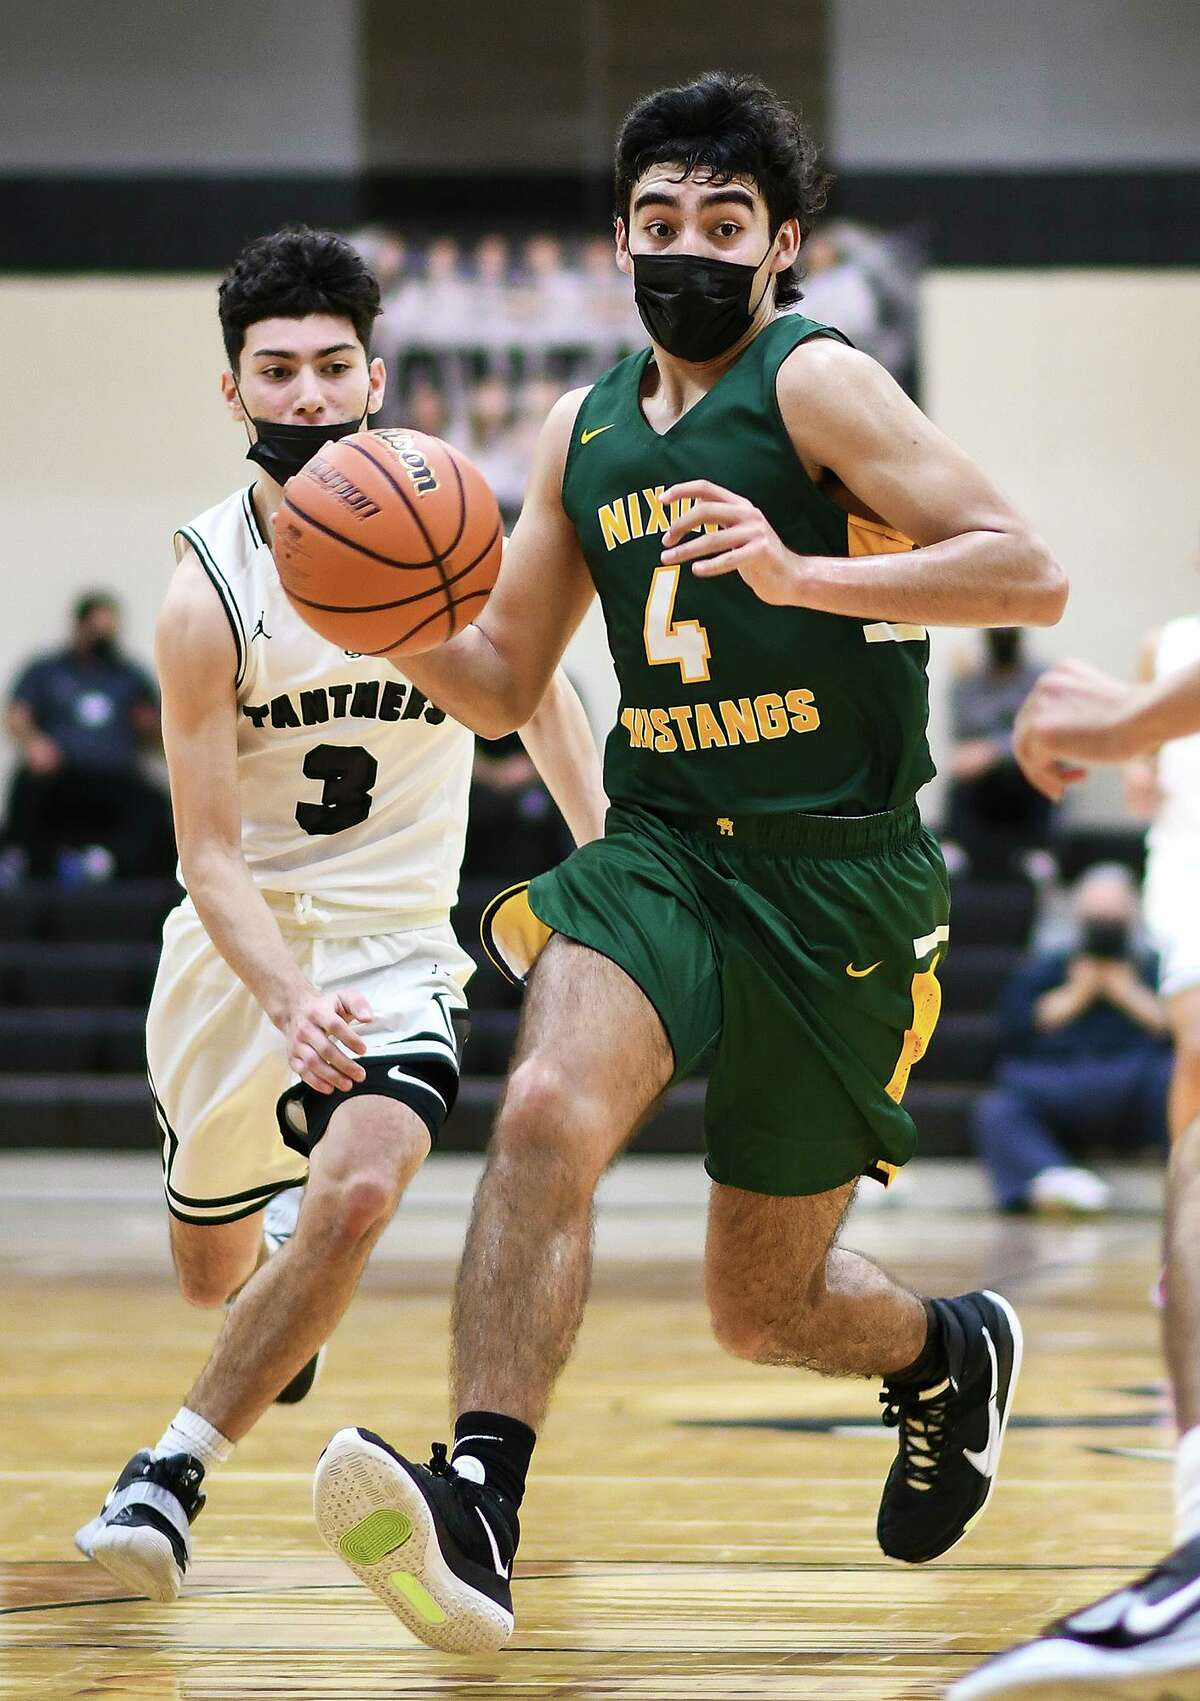 Nixon's Juan Marines, the District 30-6A co-Offensive Player of the Year, was named All-Region for the first time after averaging 17.4 points and 9.4 rebounds.